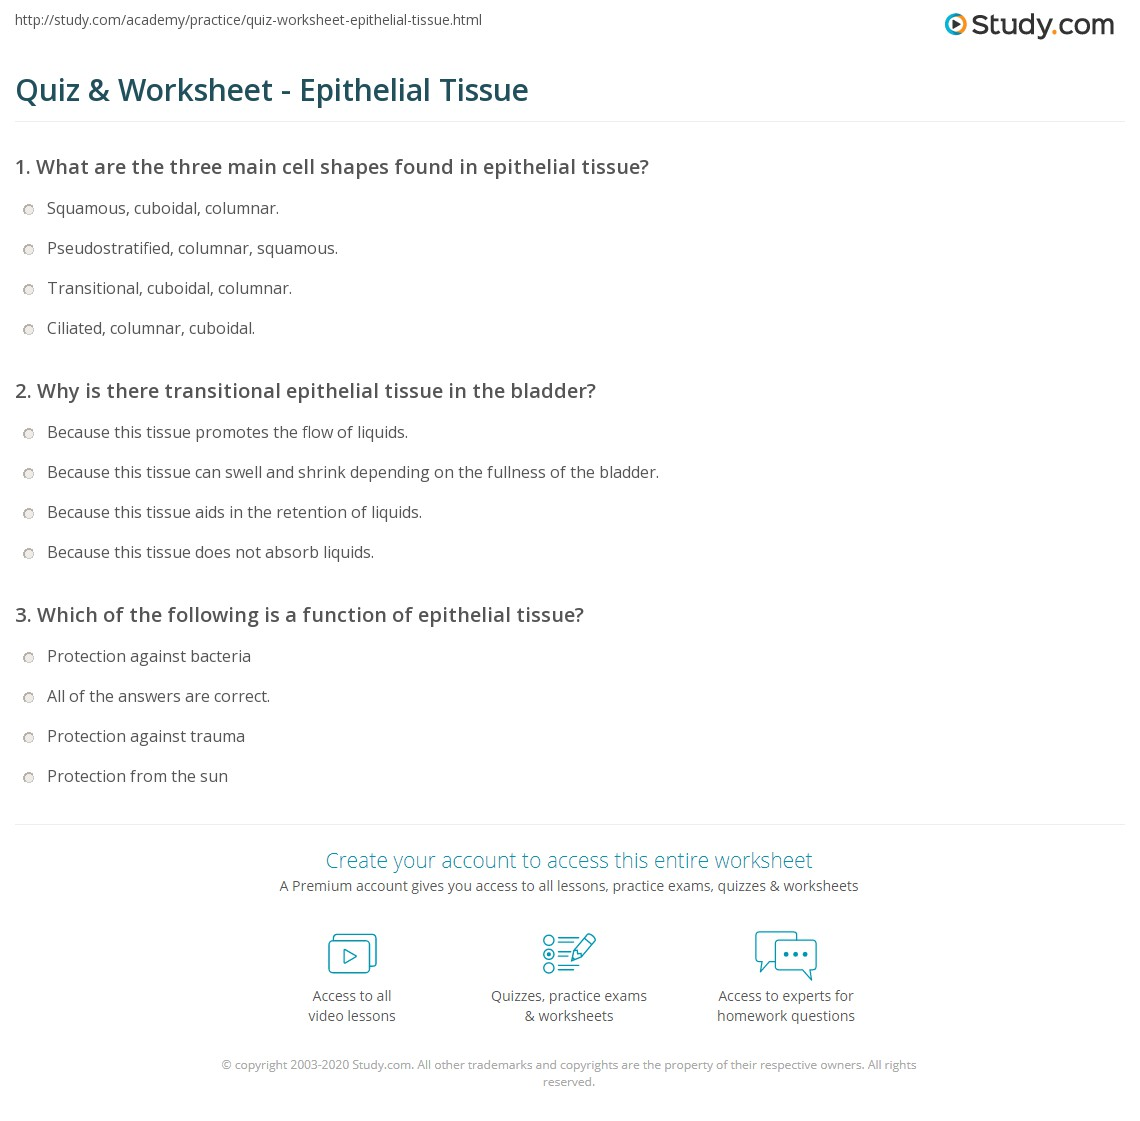 Quiz & Worksheet - Epithelial Tissue | Study.com